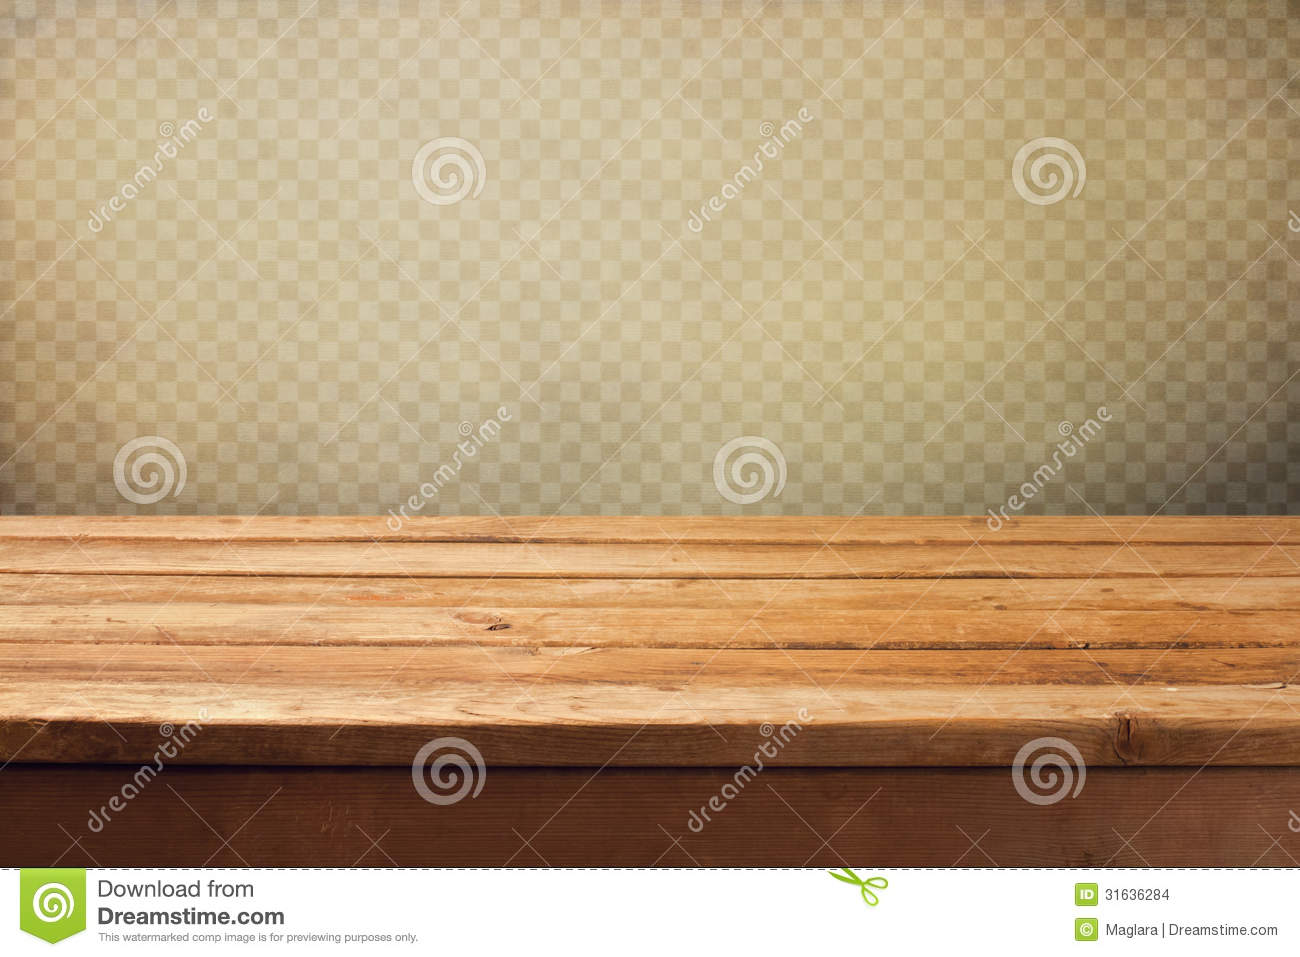 vintage background with wooden deck table over grunge